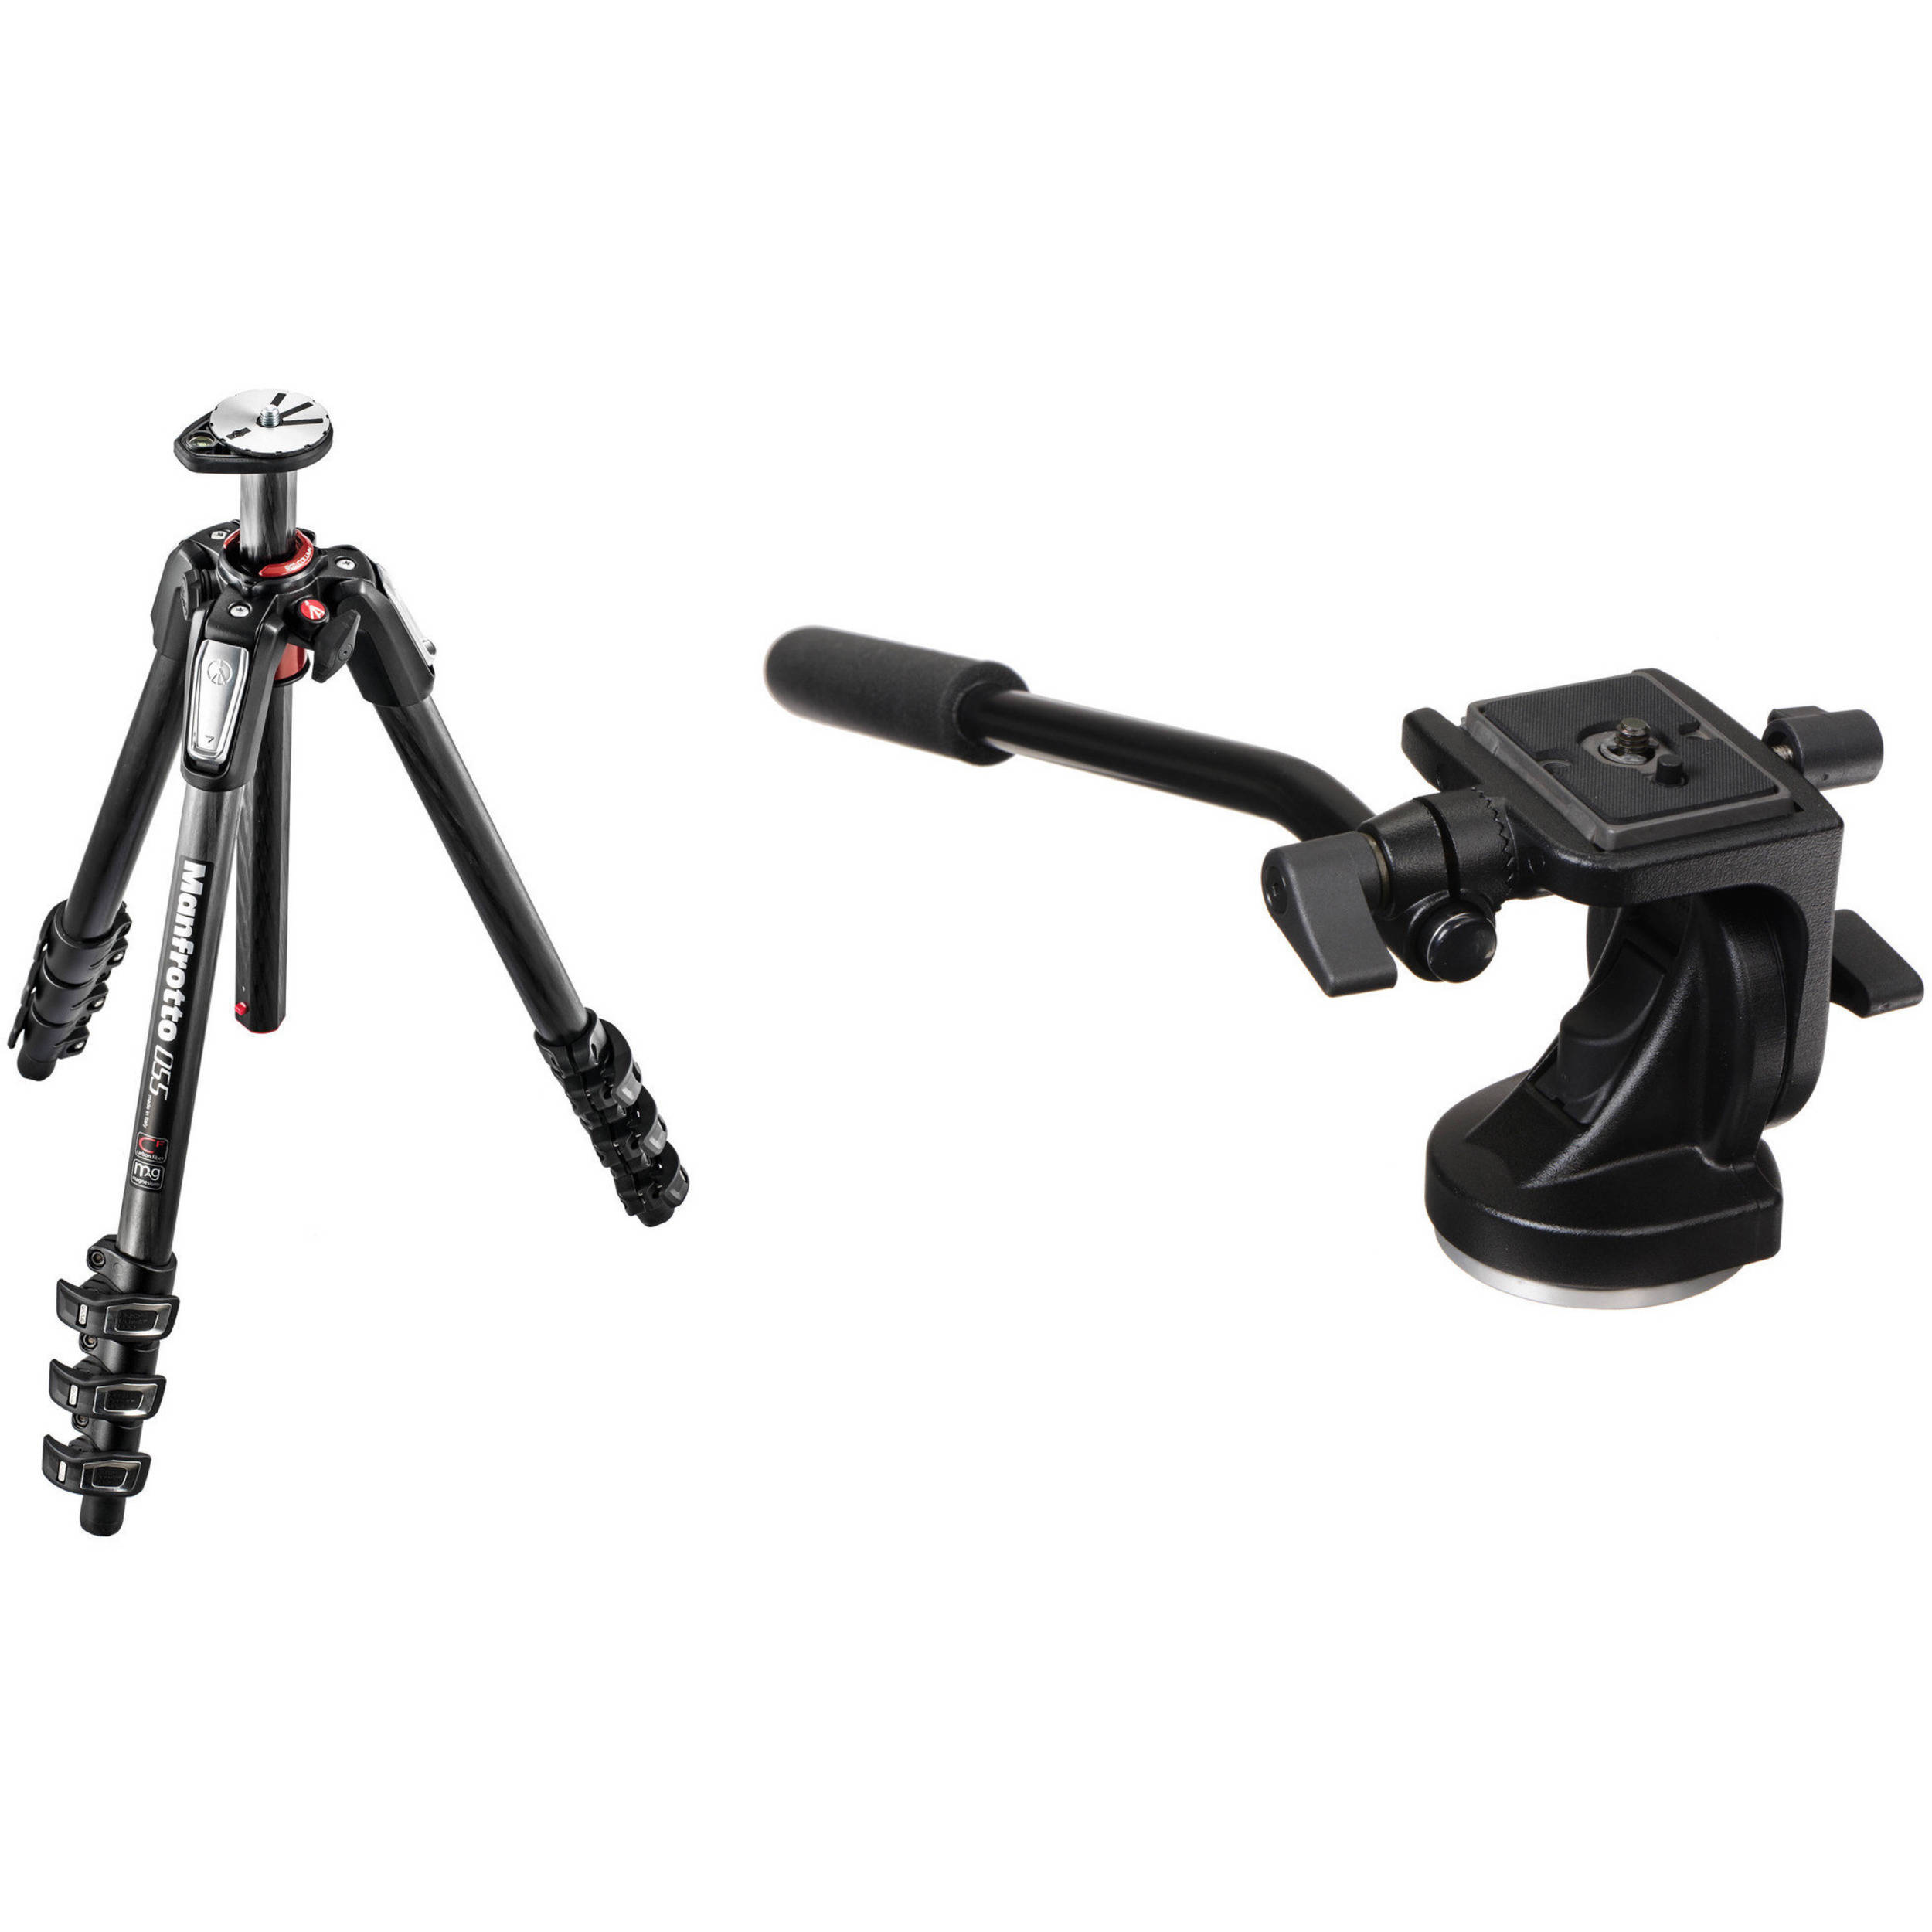 Red,1.4 with Bag FAN Tripod Lightweight Portable Travel Outdoor Mobile Phone Live Bracket